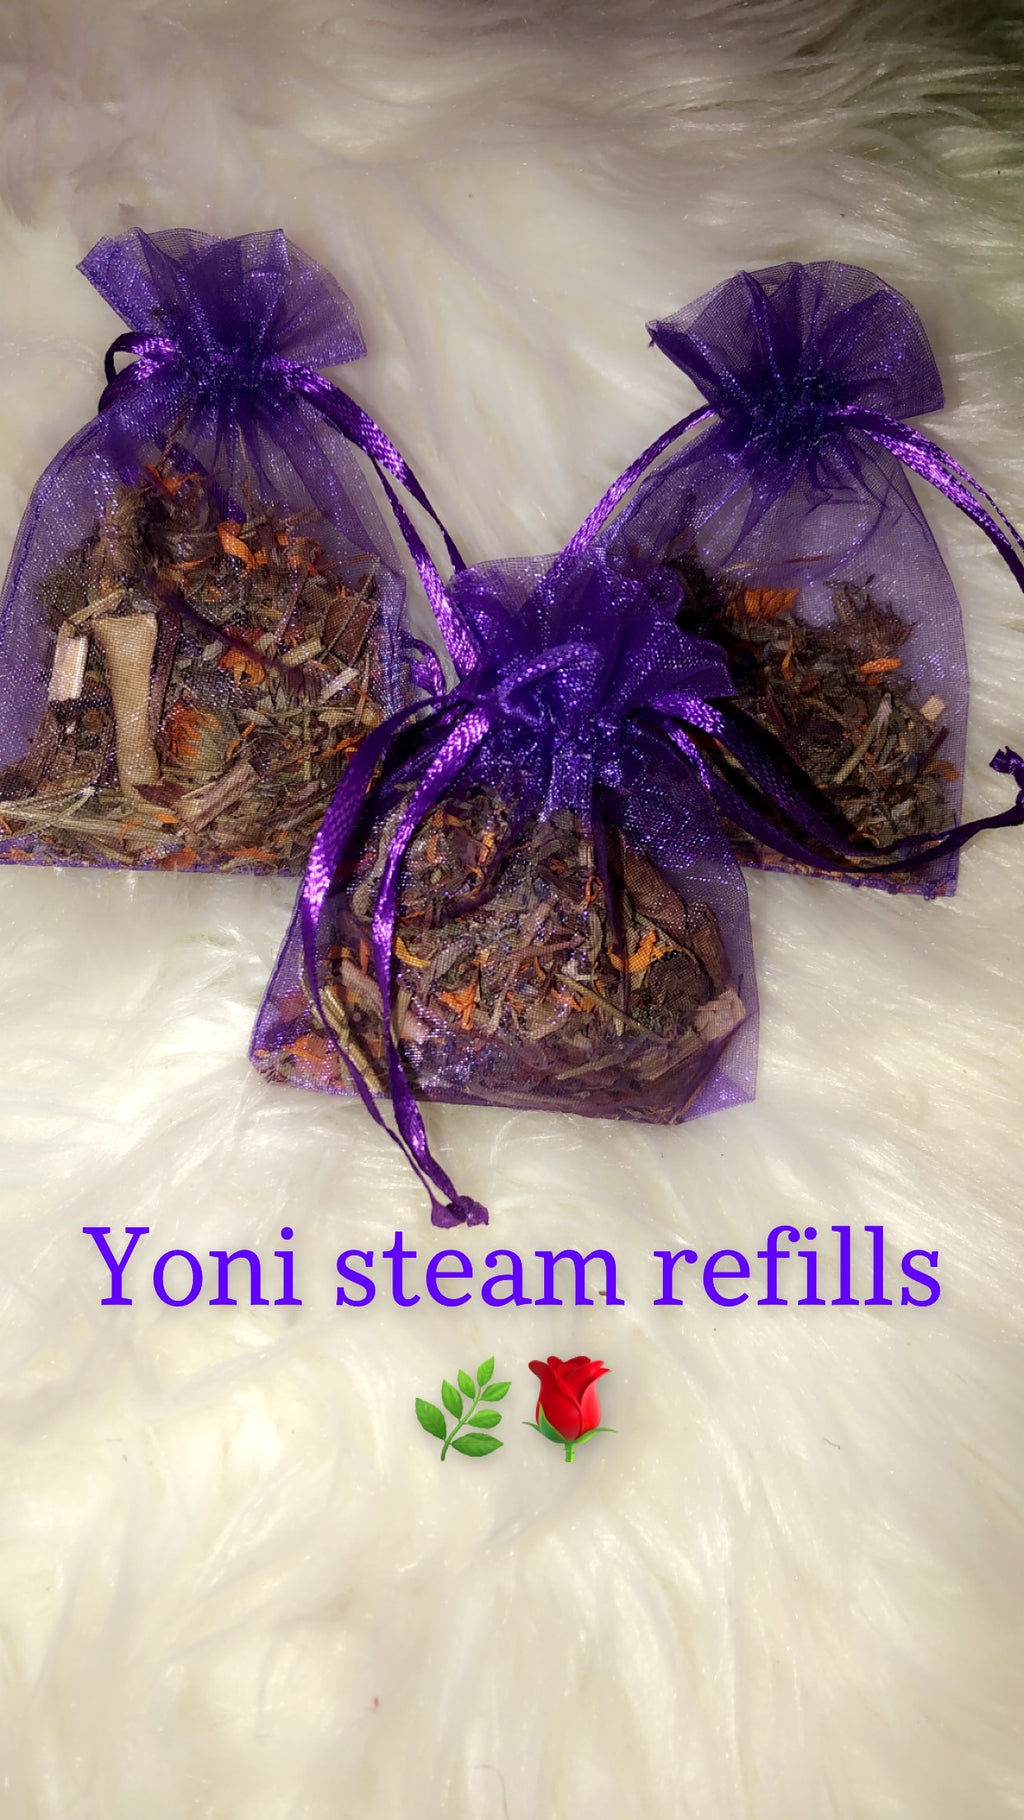 Herbal yoni steam refills 2 For 15